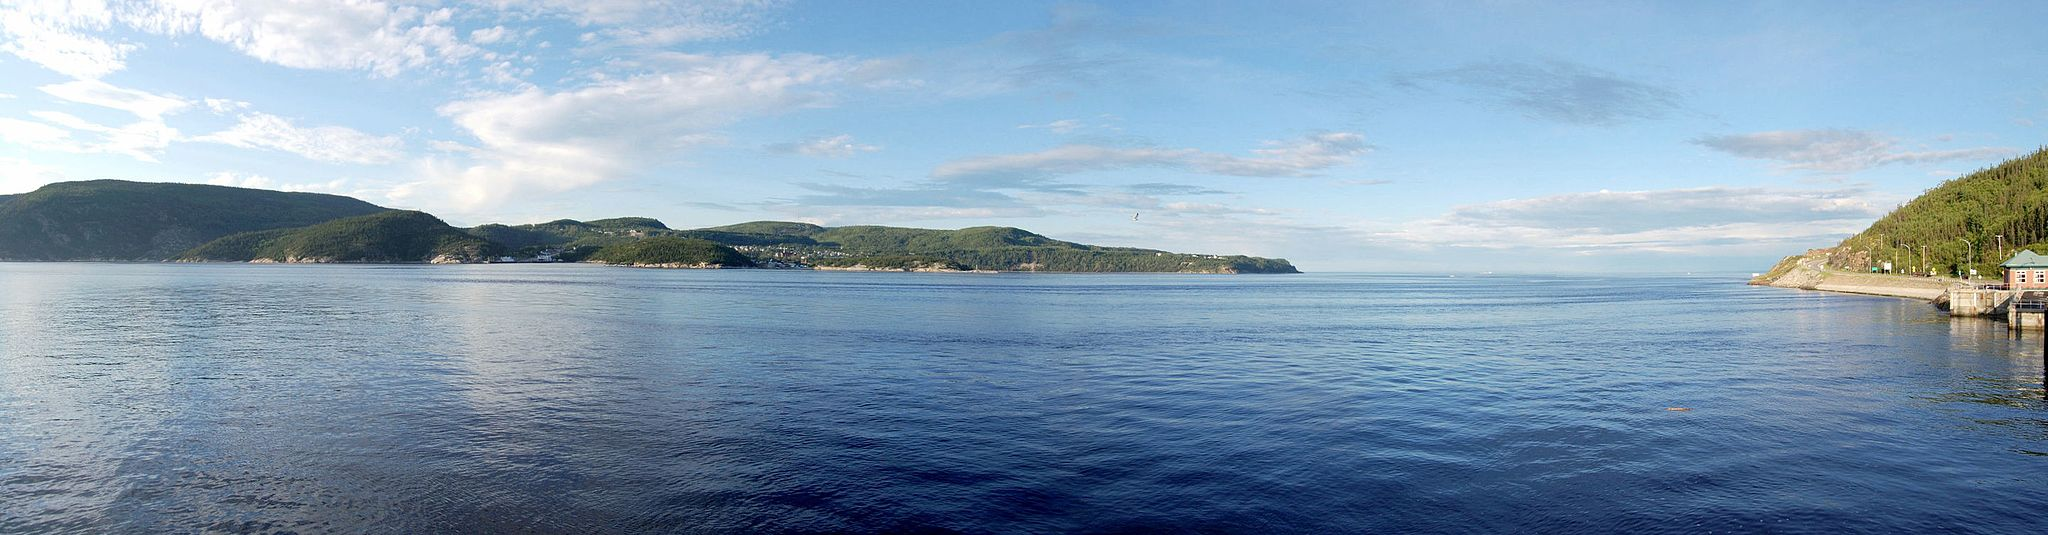 View of Tadoussac from Baie-Sainte-Catherine